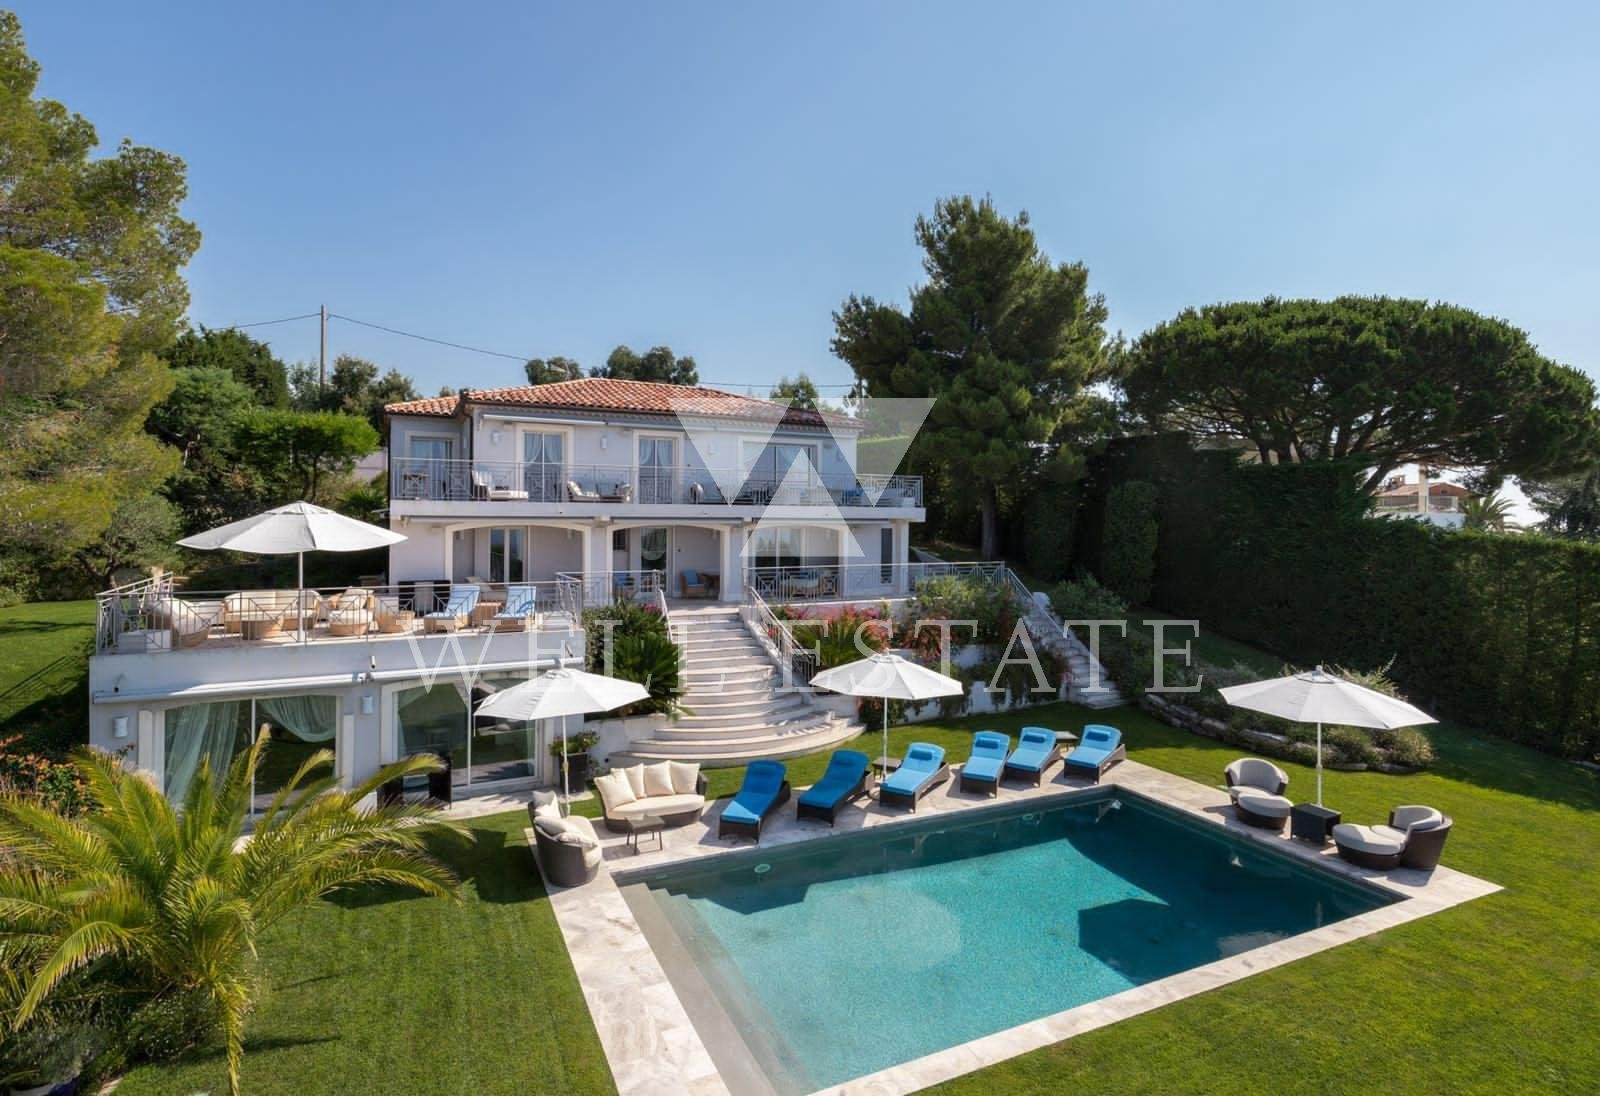 SUPER CANES VILLA NEO PROVENCAL 250M2 WITH SWIMMING POOL AND PANORAMIC SEA VIEW